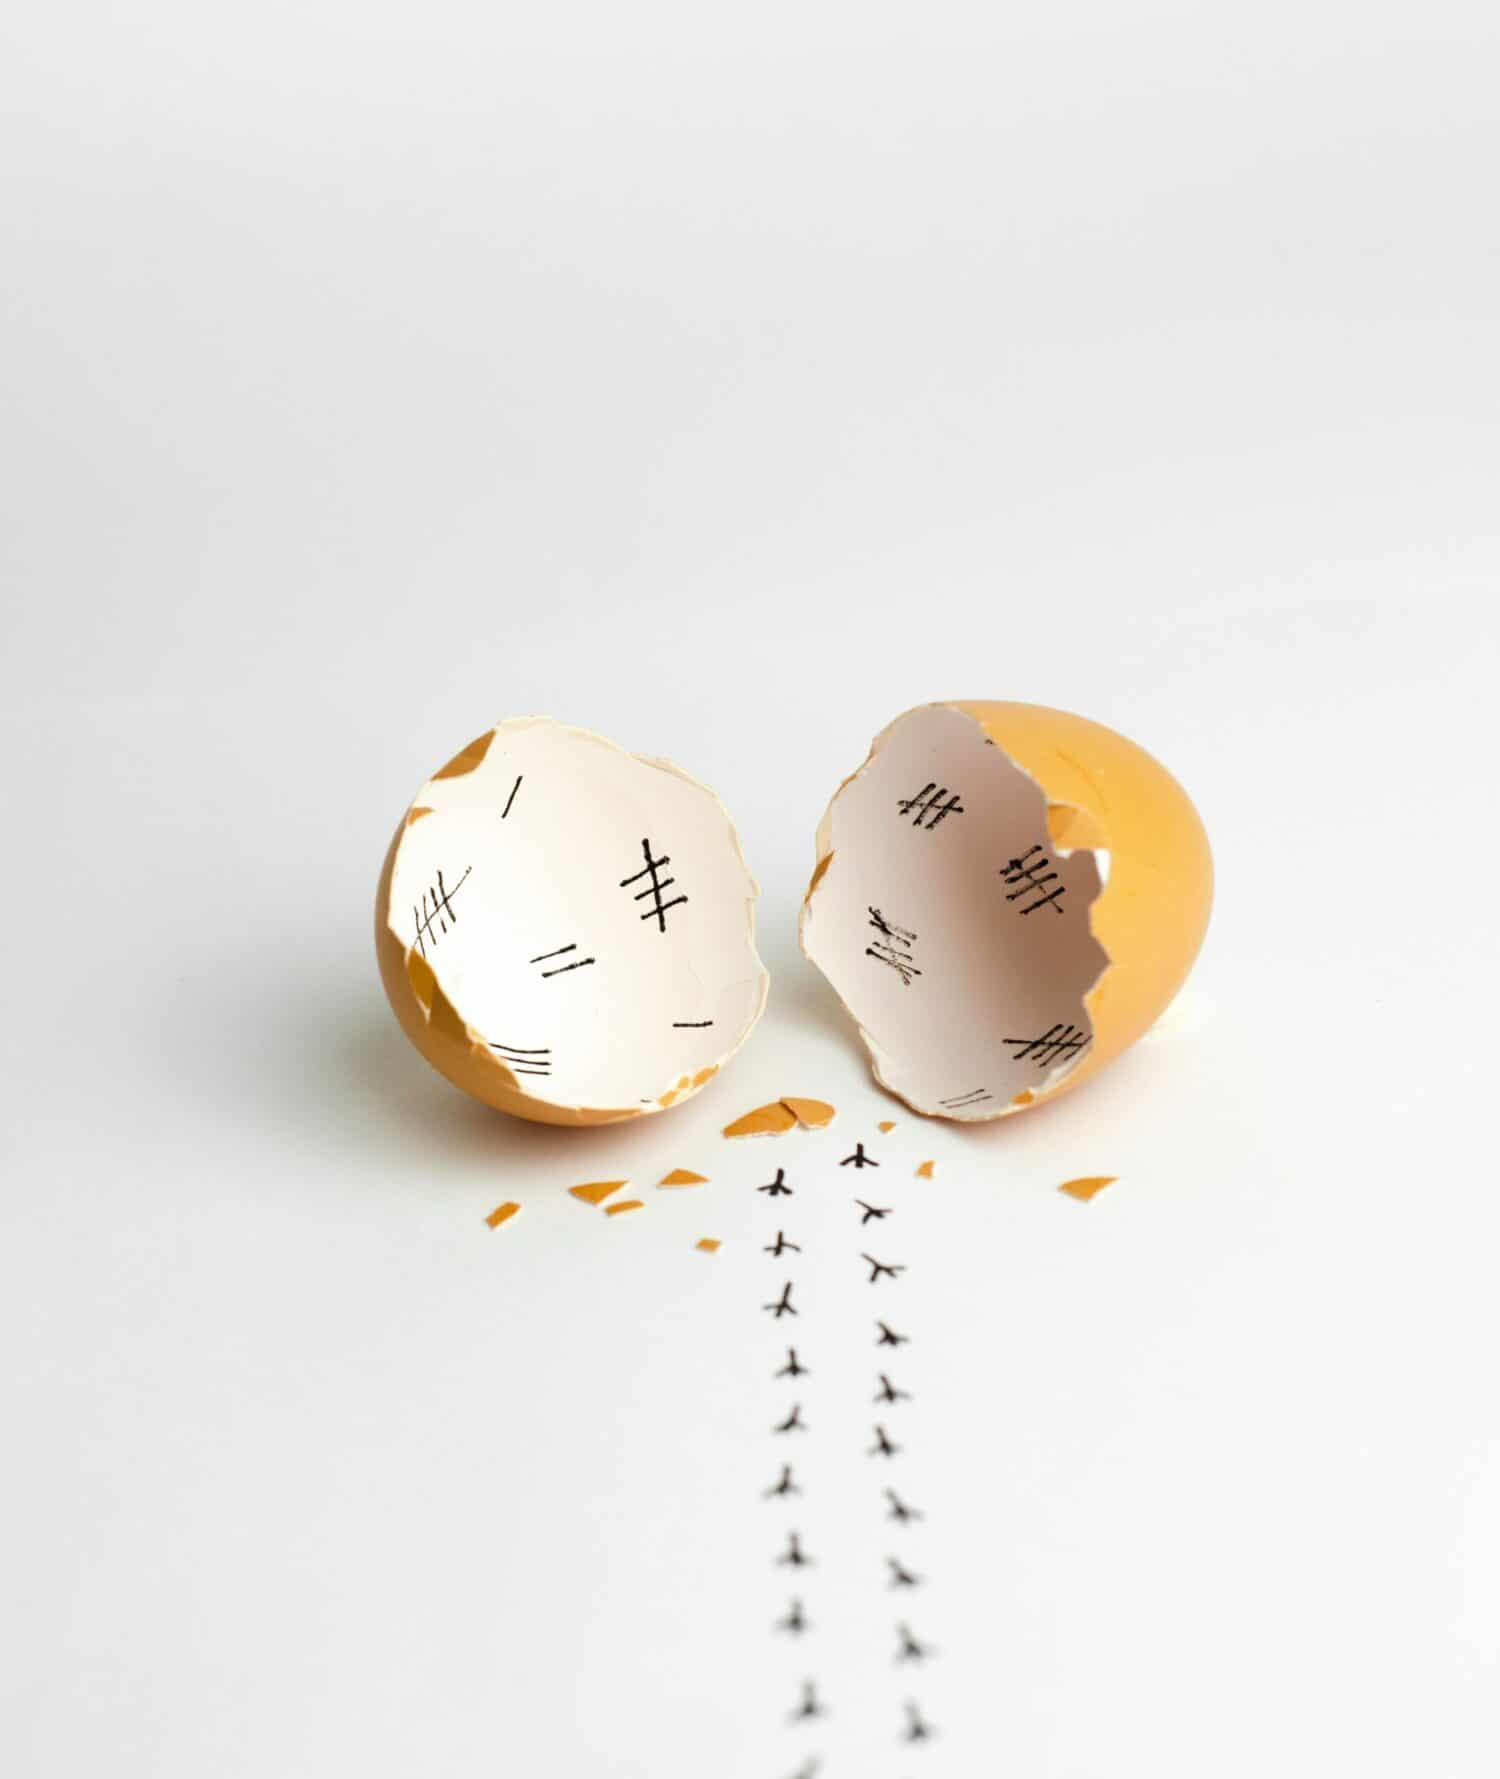 Acupuncture for low AMH? This image shows hash marks inside a broken eggshell, with tiny chicken foot prints walking away from the eggshell. This here is meant to demonstrate all the long days spent waiting while trying to get pregnant.